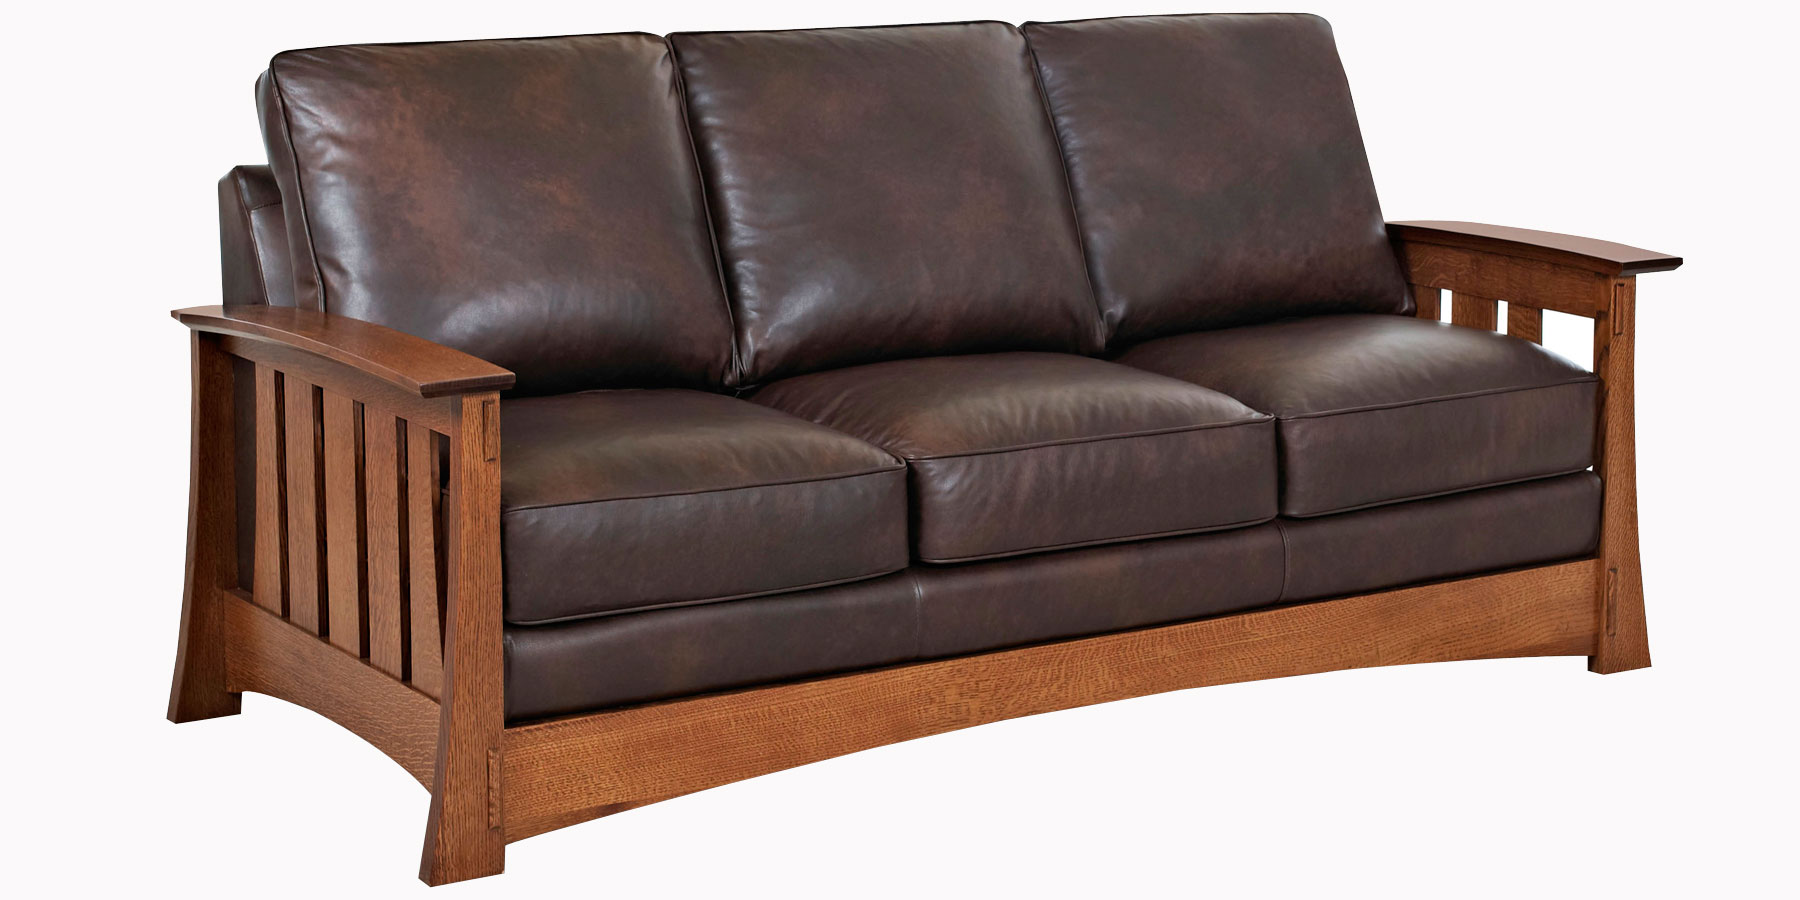 Leather Sofa Chair Mission Style Leather Pillow Back Chairs And Sofas